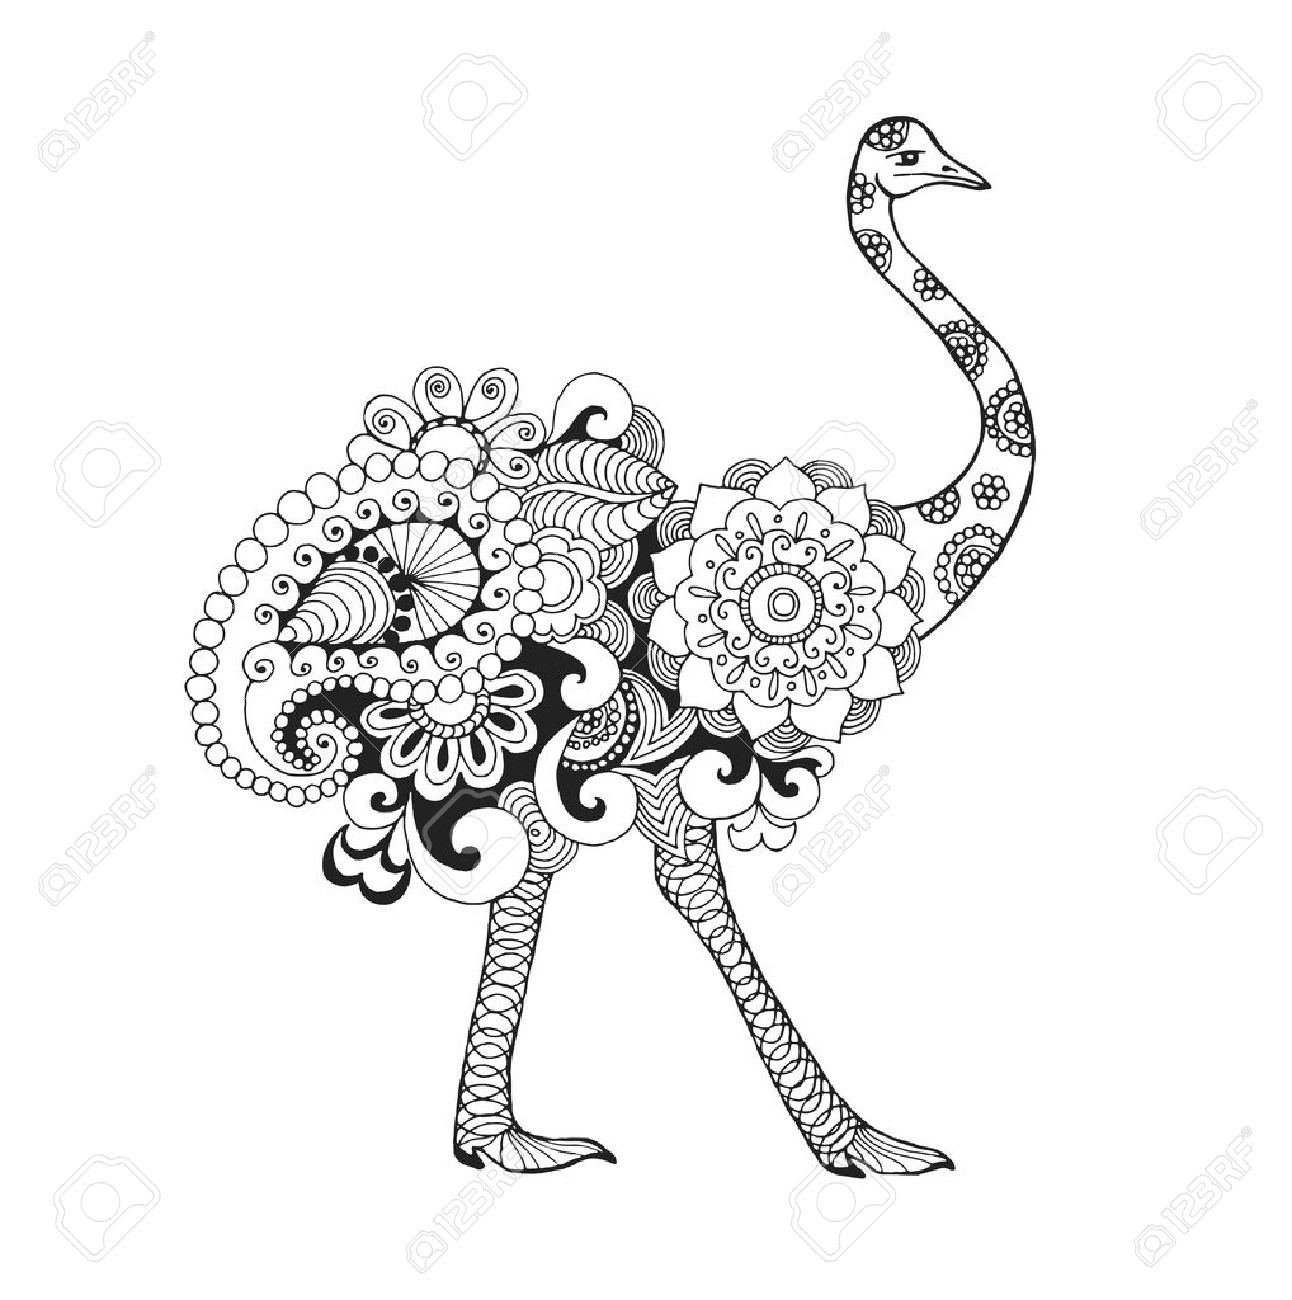 ostrich bird black white hand drawn doodle animal ethnic